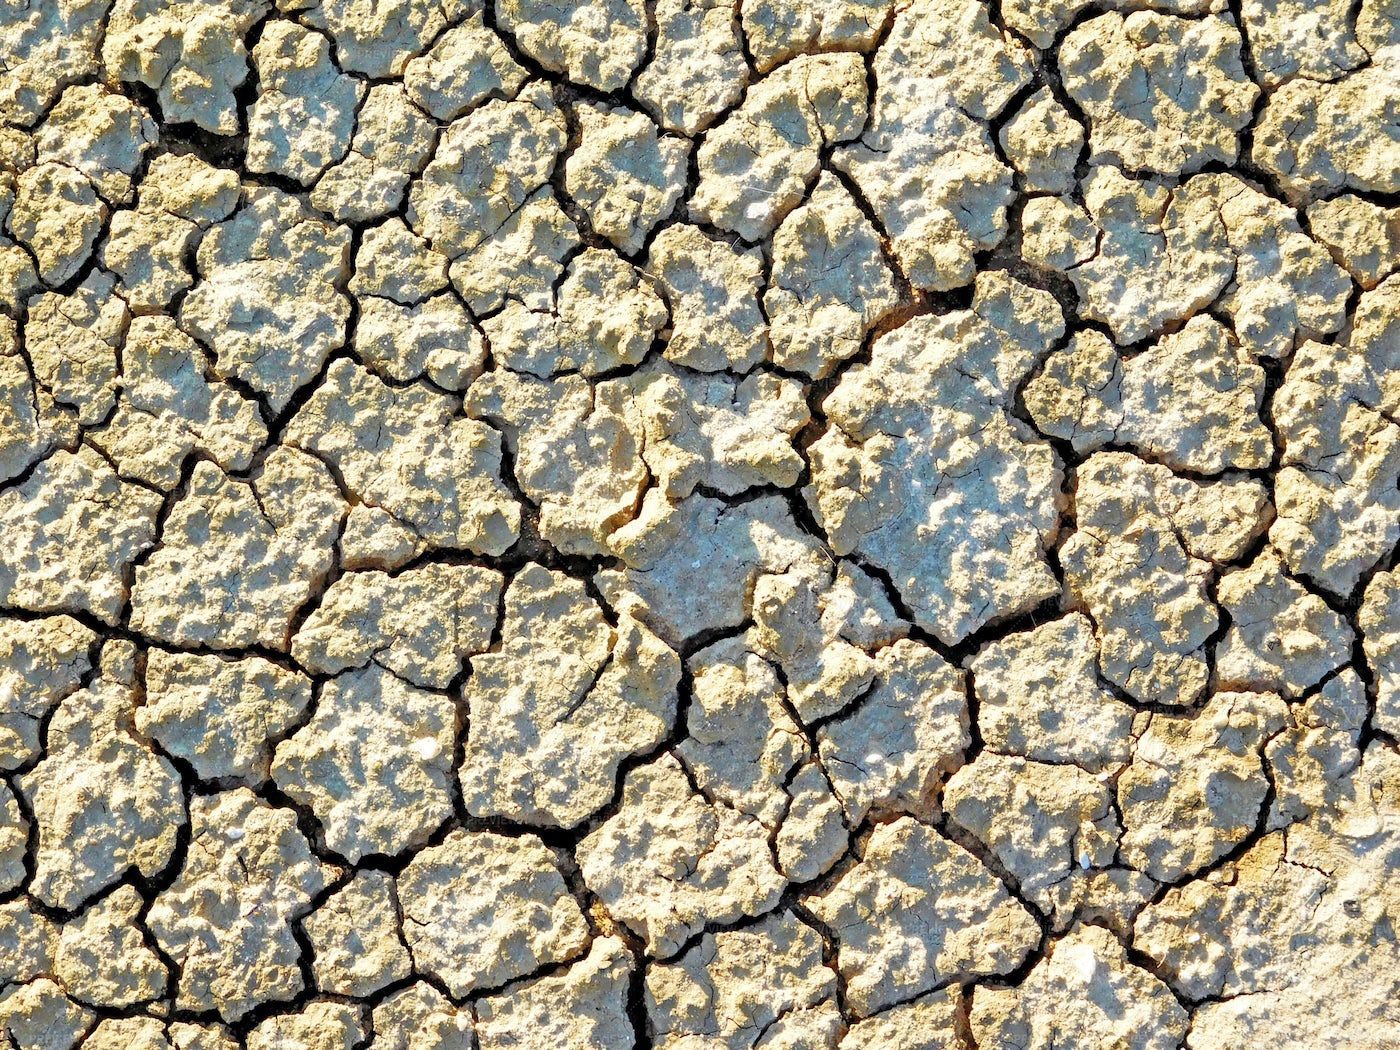 Parched Earth Textures: Stock Photos